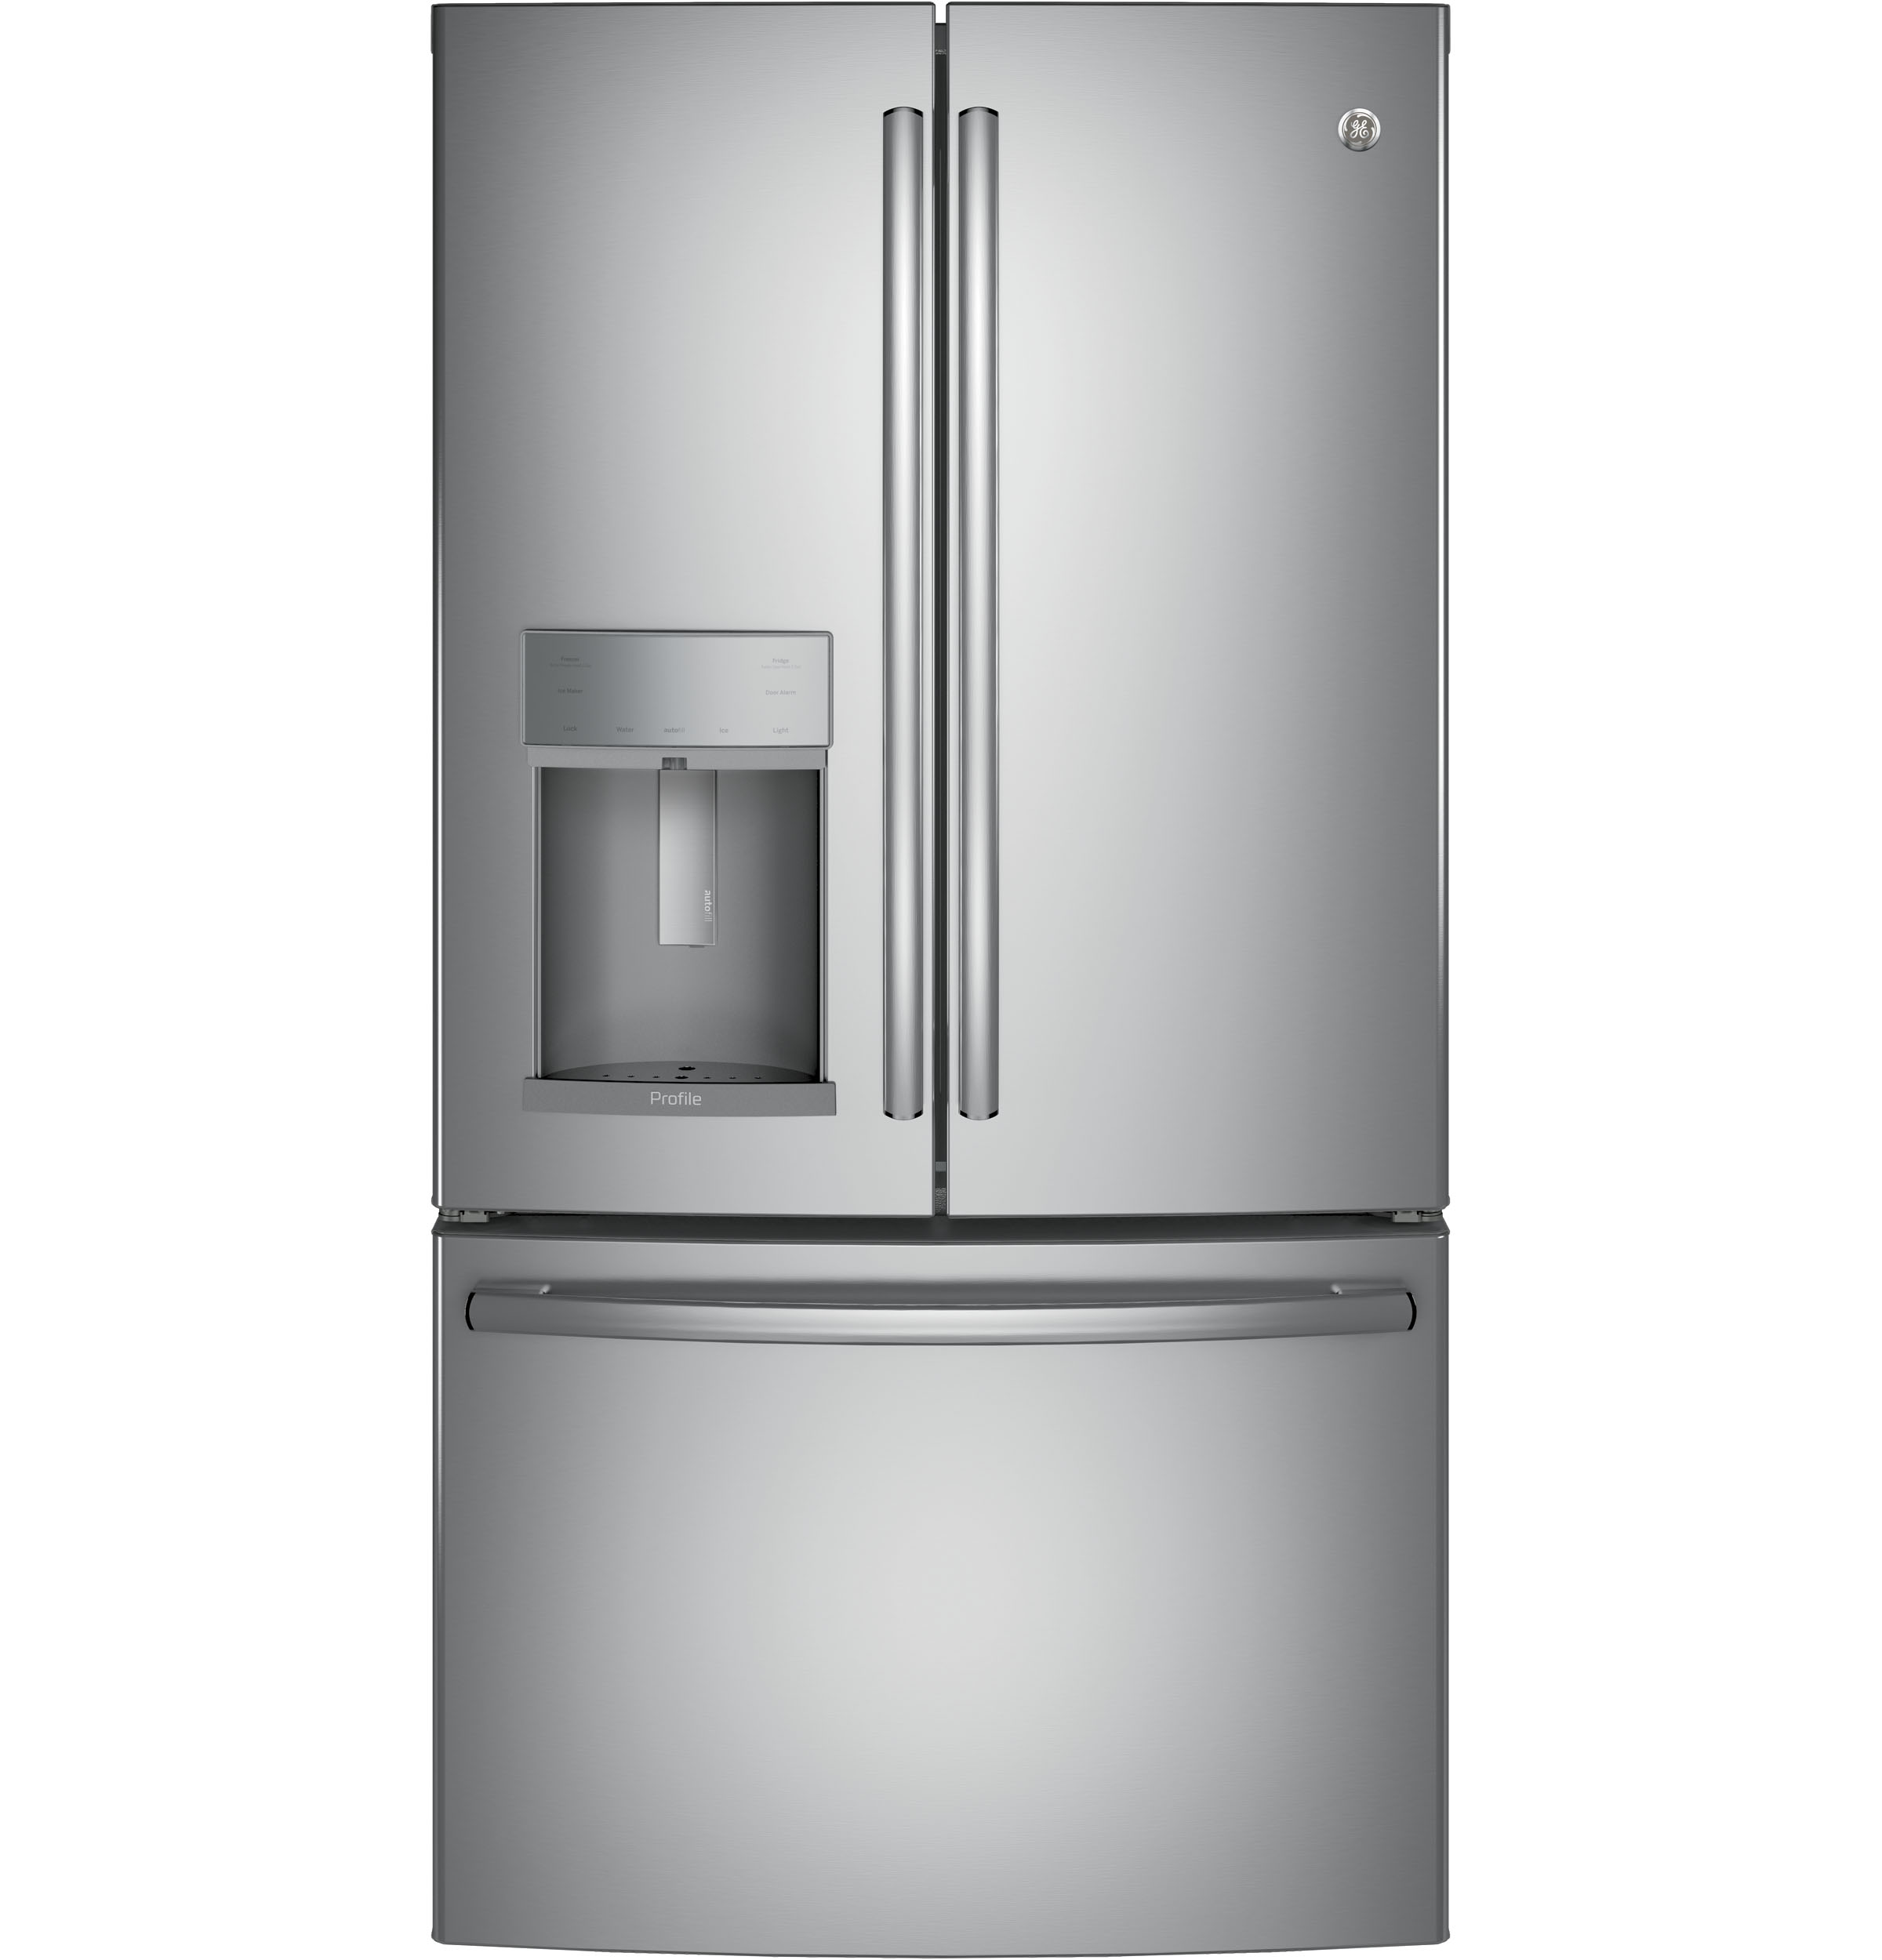 GE Profile GE Profile™ Series 27.8 Cu. Ft. French-Door Refrigerator with Door In Door and Hands-Free AutoFill